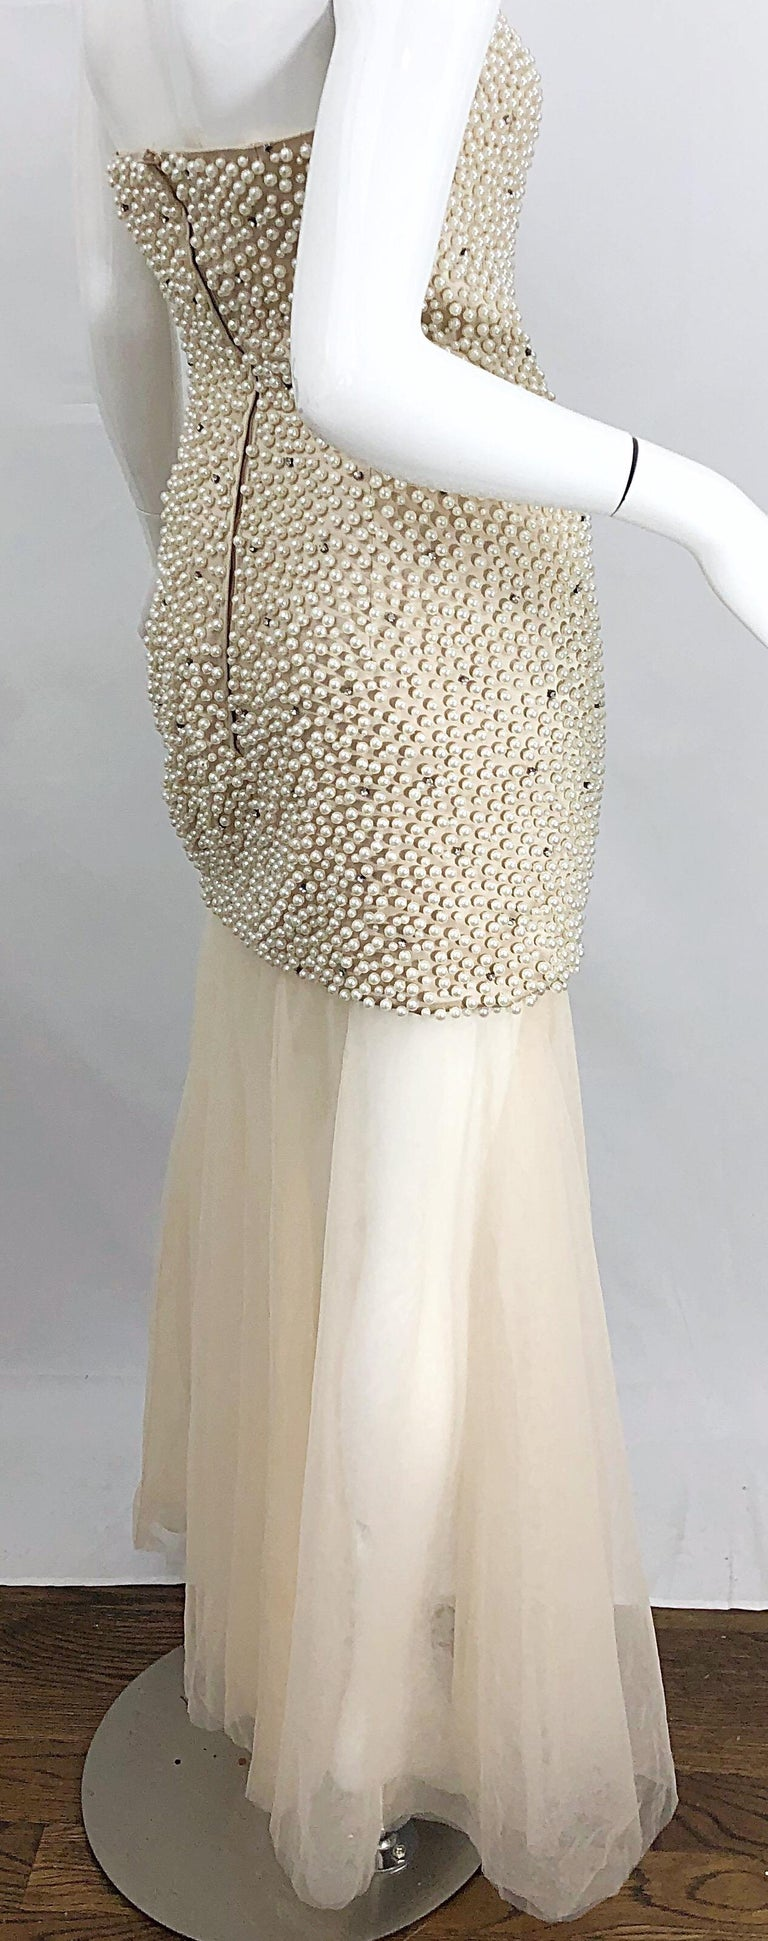 Phenomenal 1990s Couture Pearl + Rhinestone Encrusted Strapless Beige 90s Gown For Sale 3